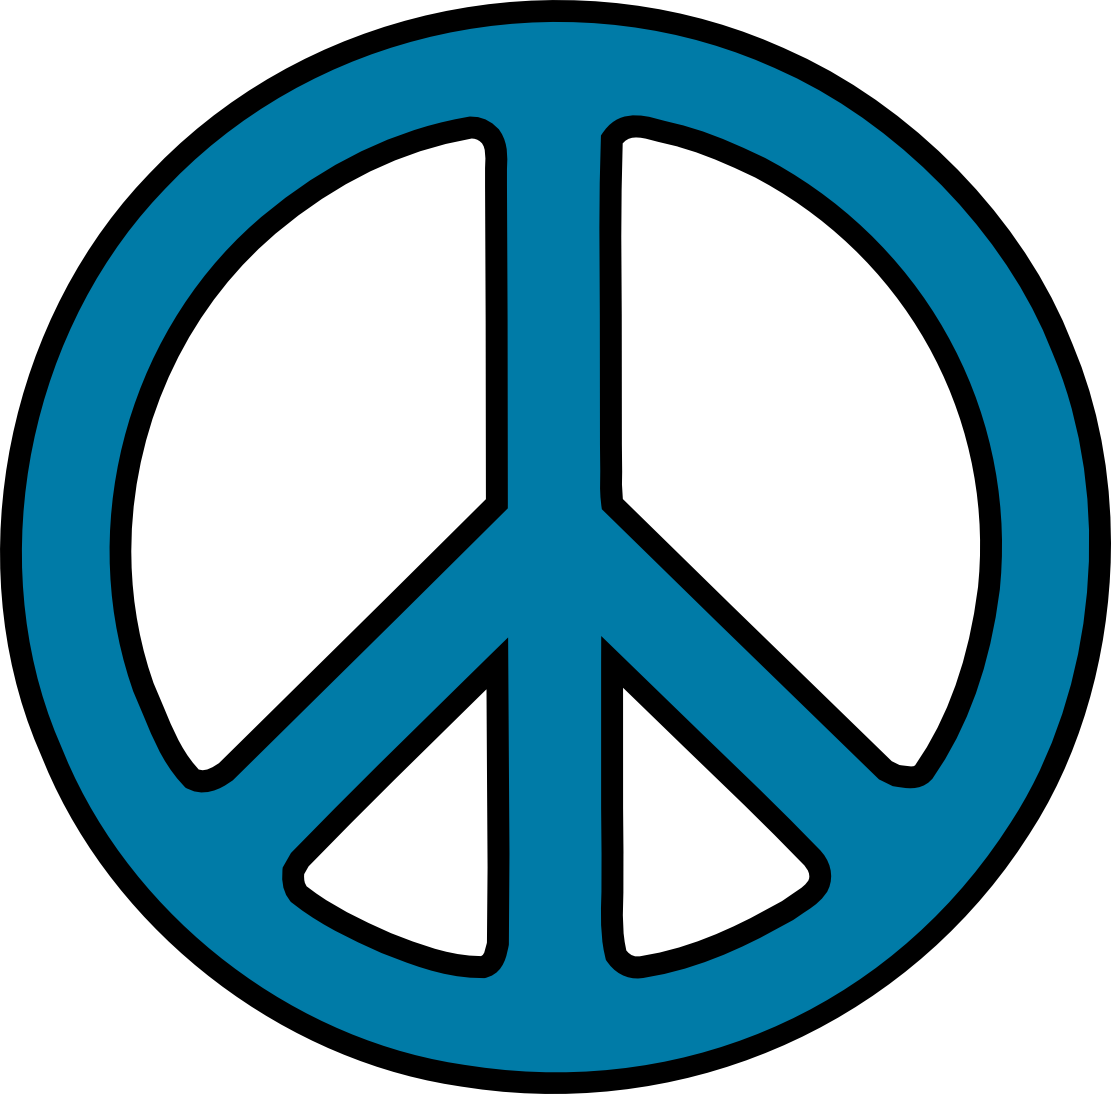 Peace Sign clipart 70's Dancing sihlouettes 70s Clip